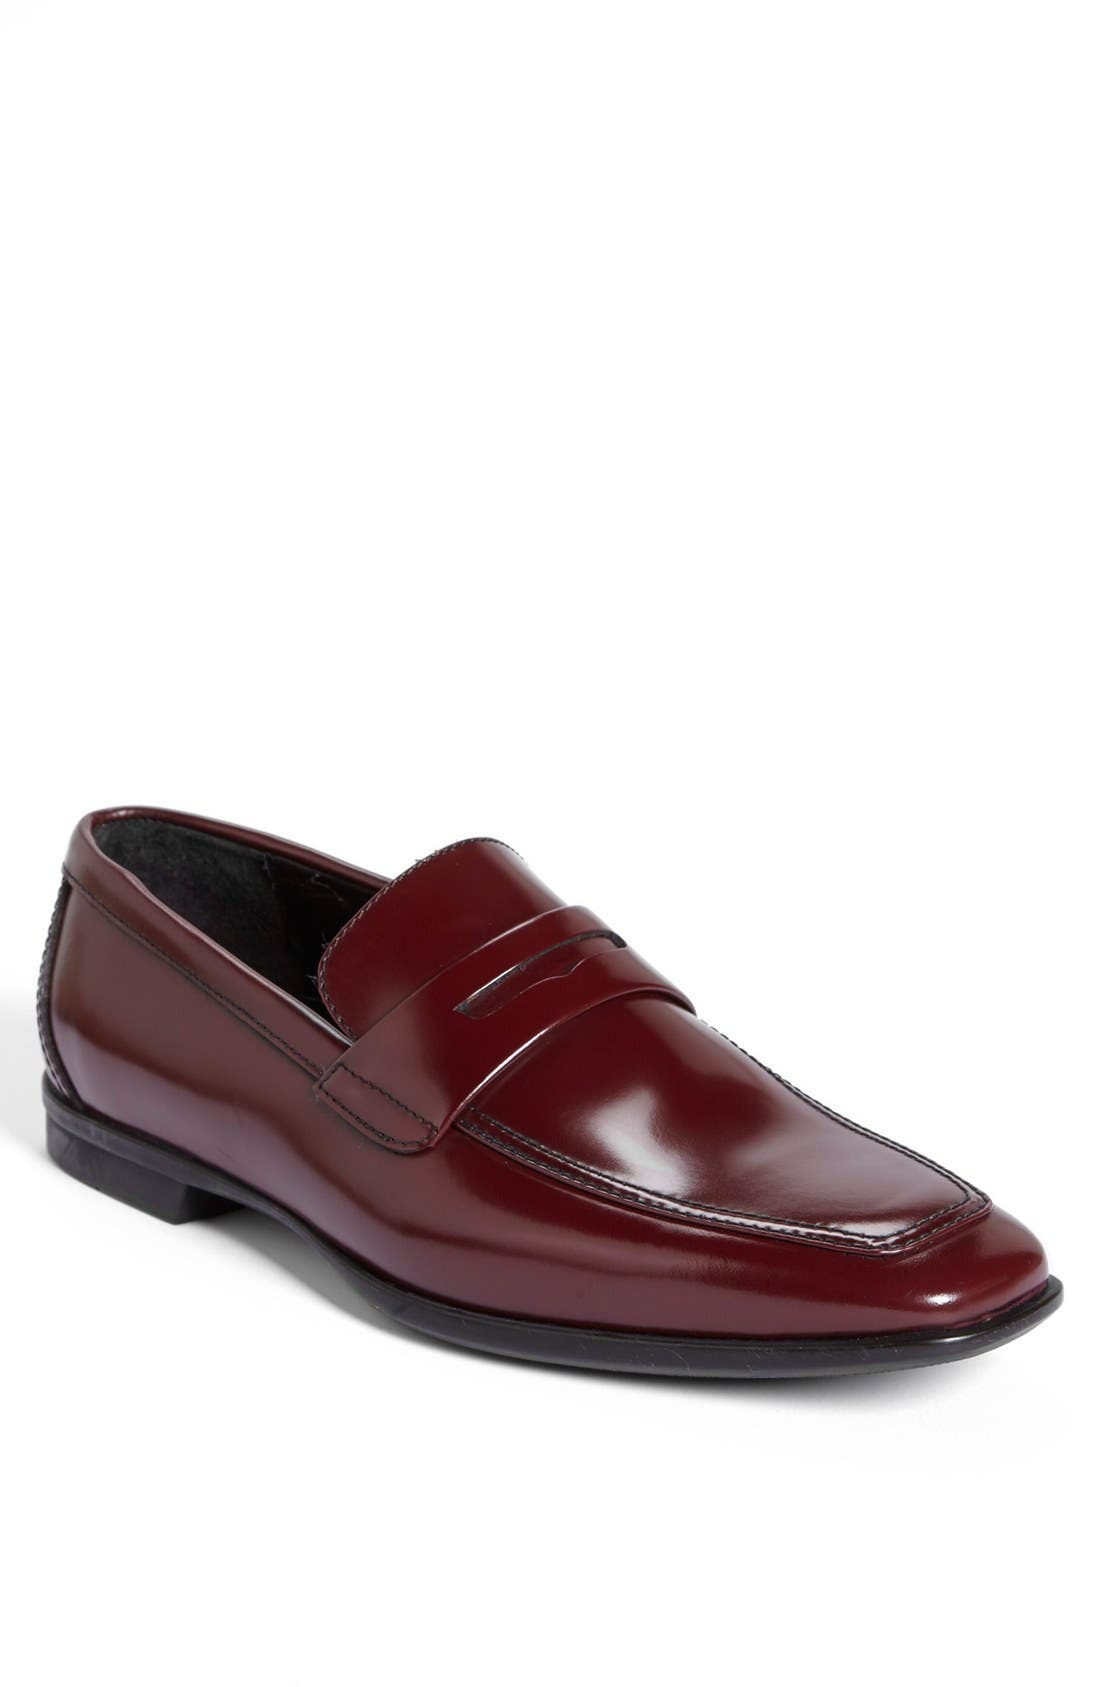 Alternate Image 1 Selected - Bruno Magli 'Millonia' Penny Loafer